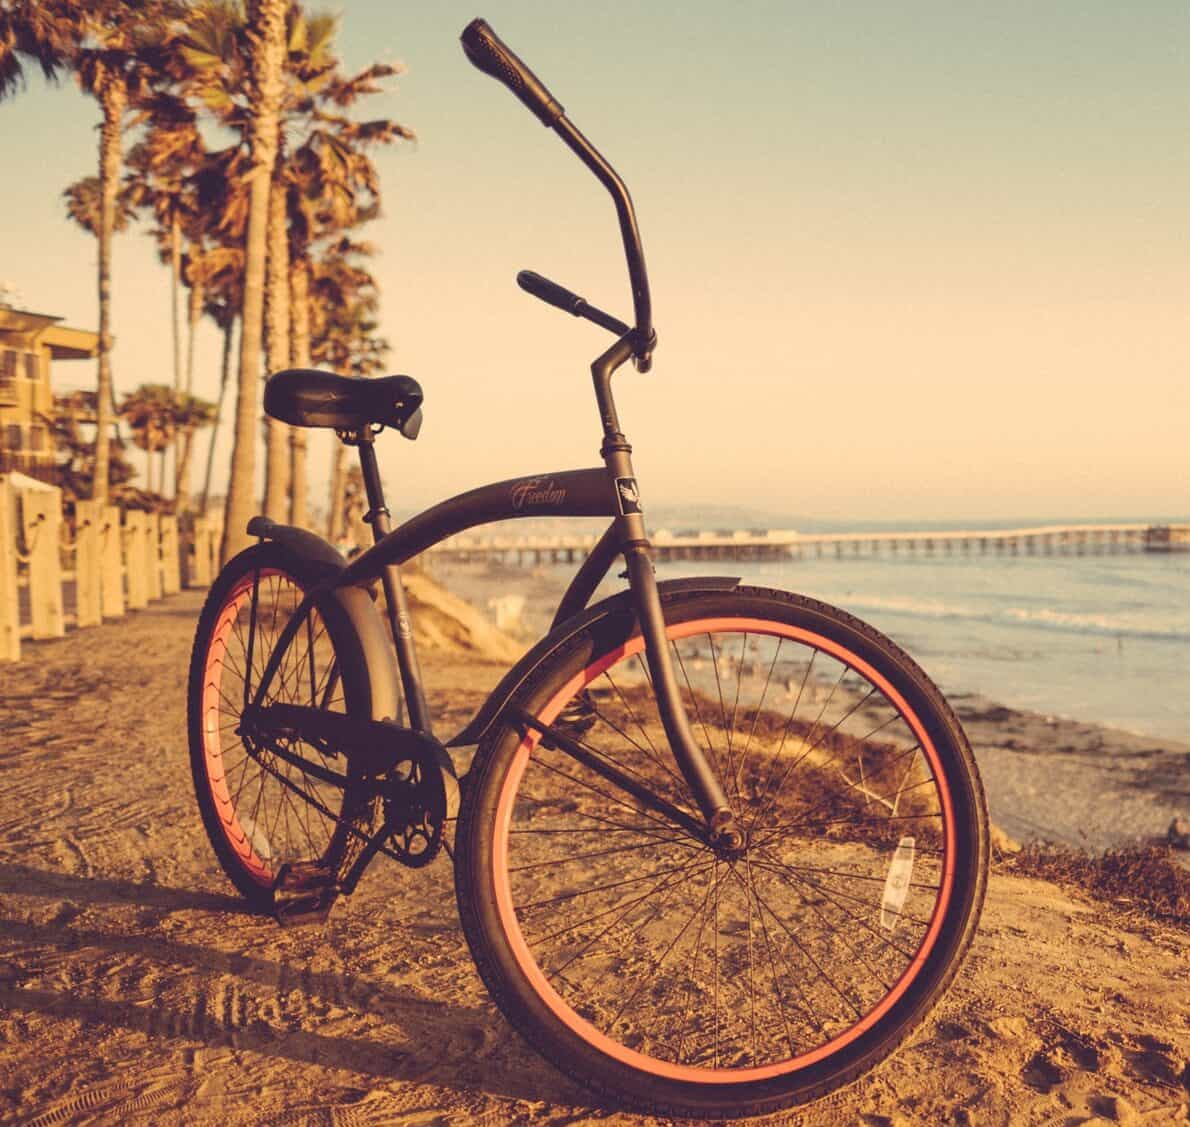 Beach cruiser bicycles offer a fun, relaxing ride and smooth and straight terrain